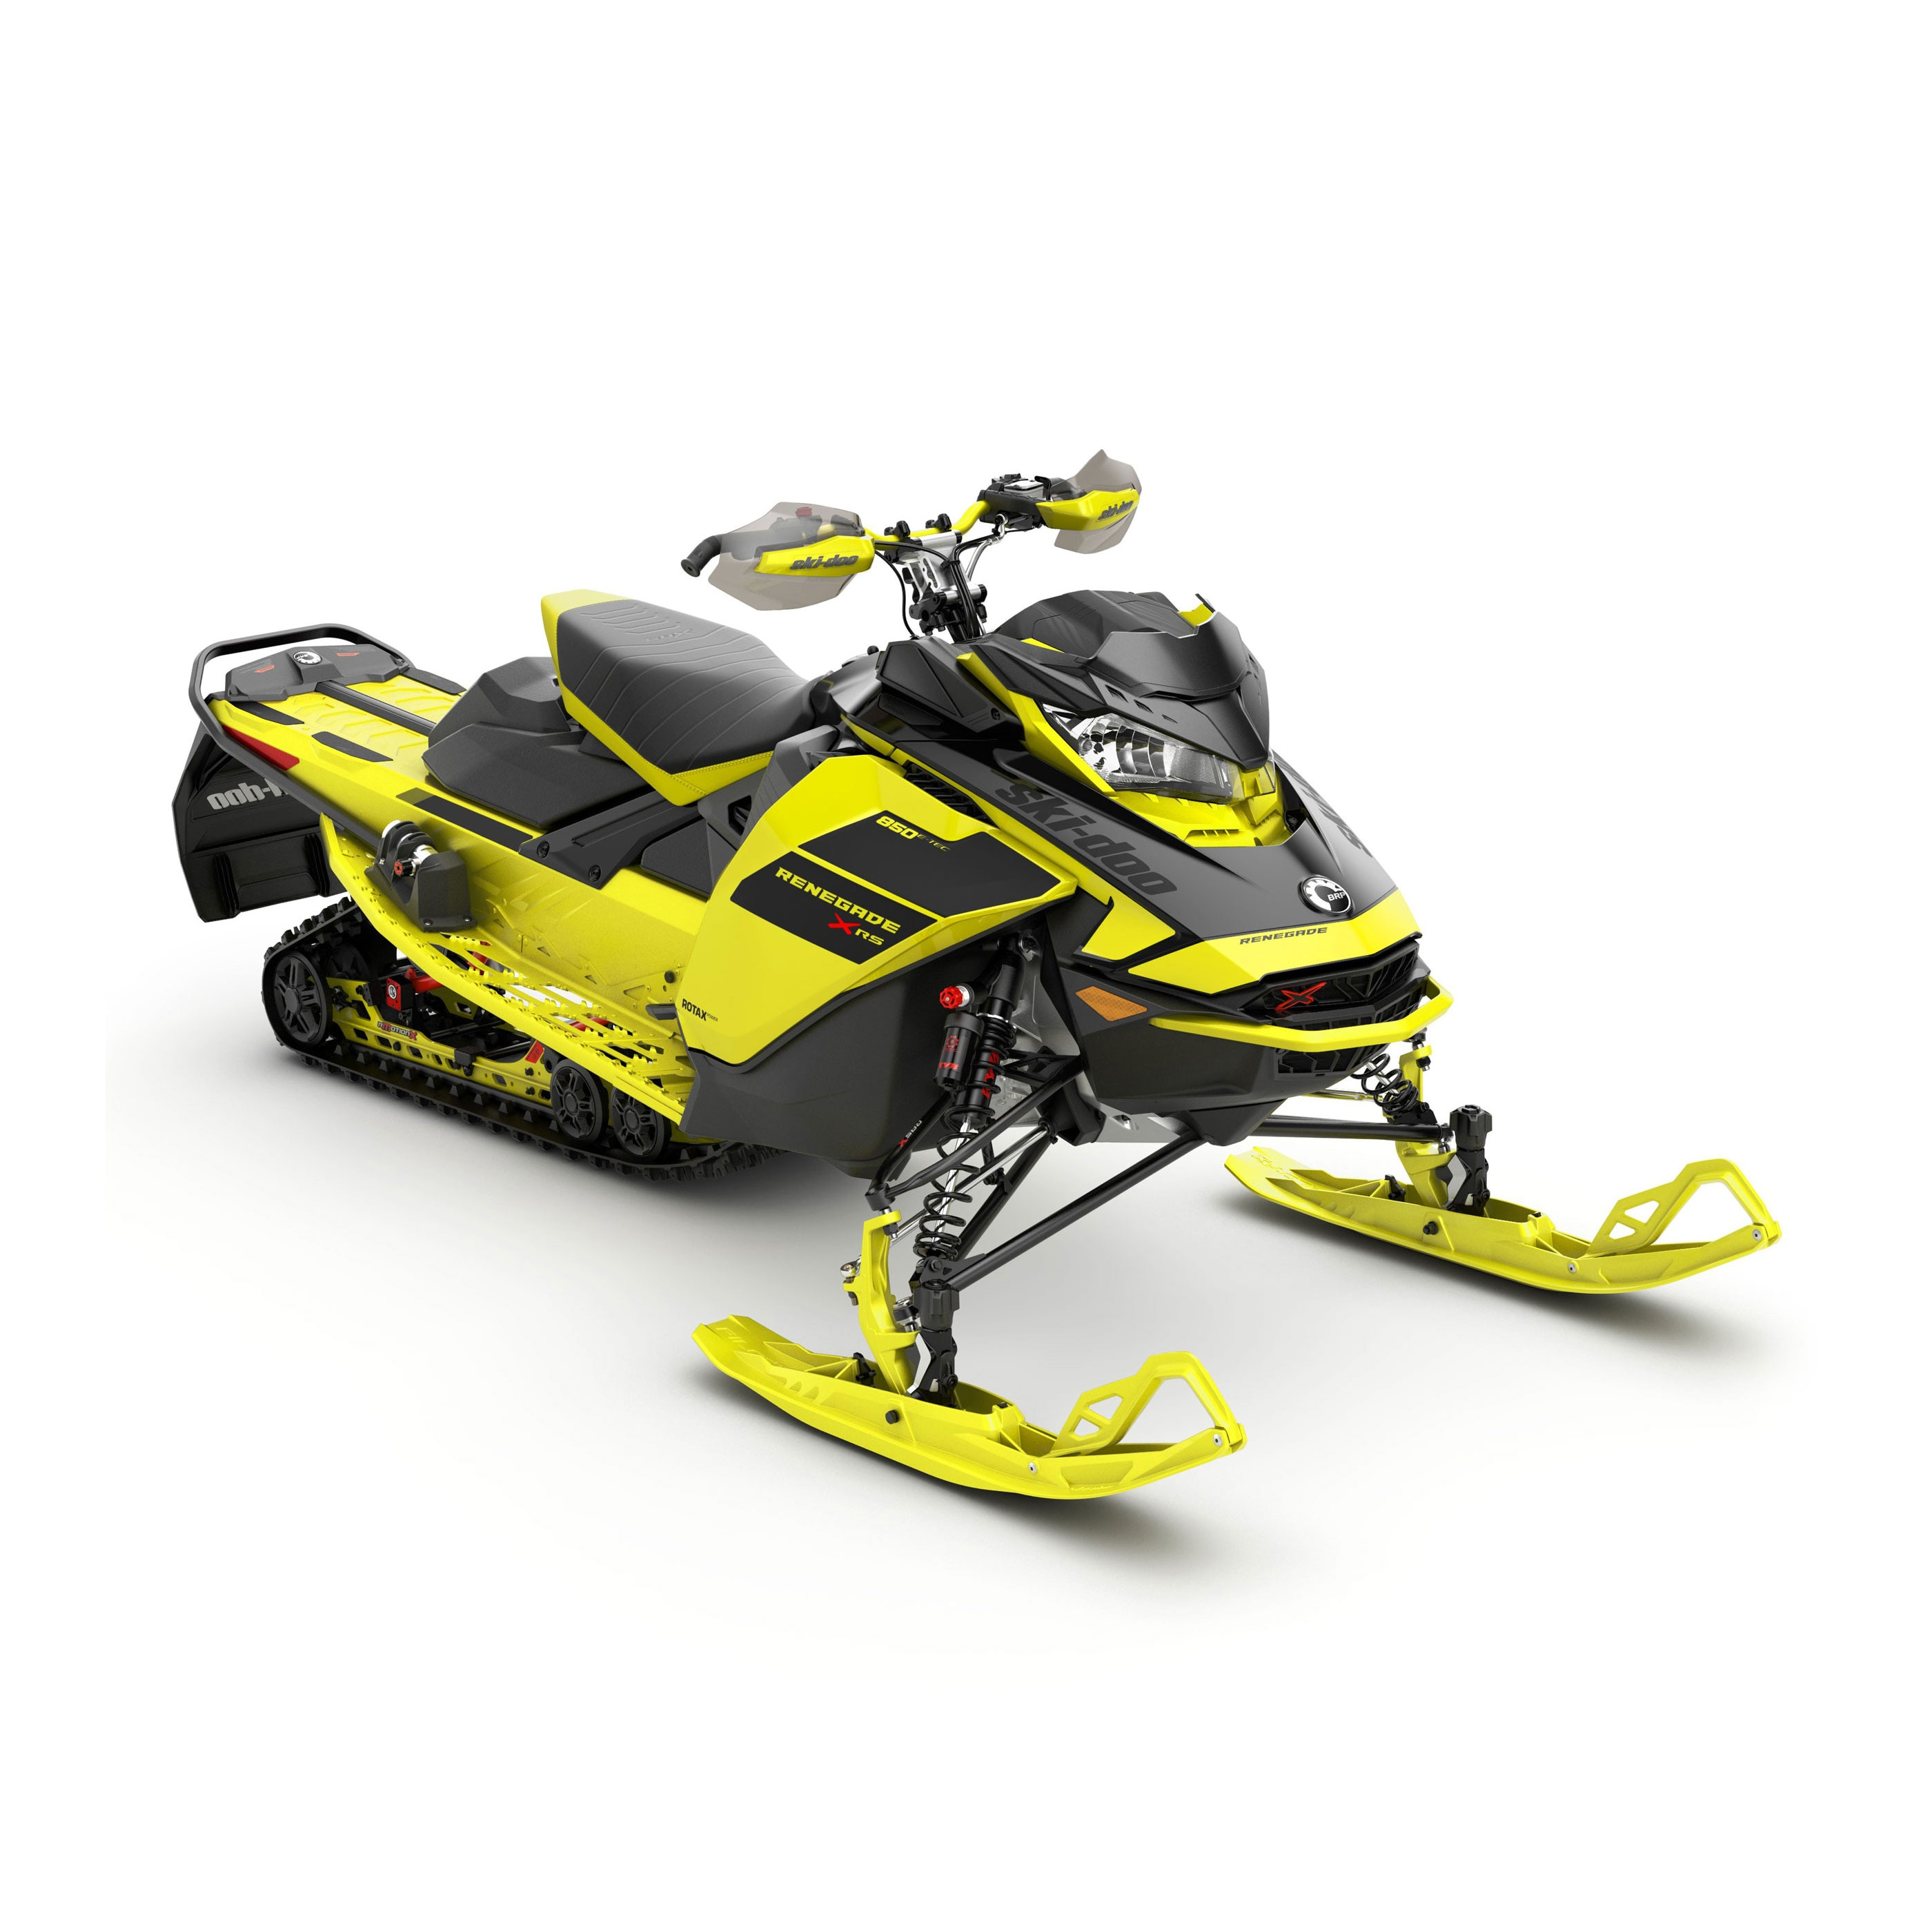 Ski-Doo Renegade 2021 Model